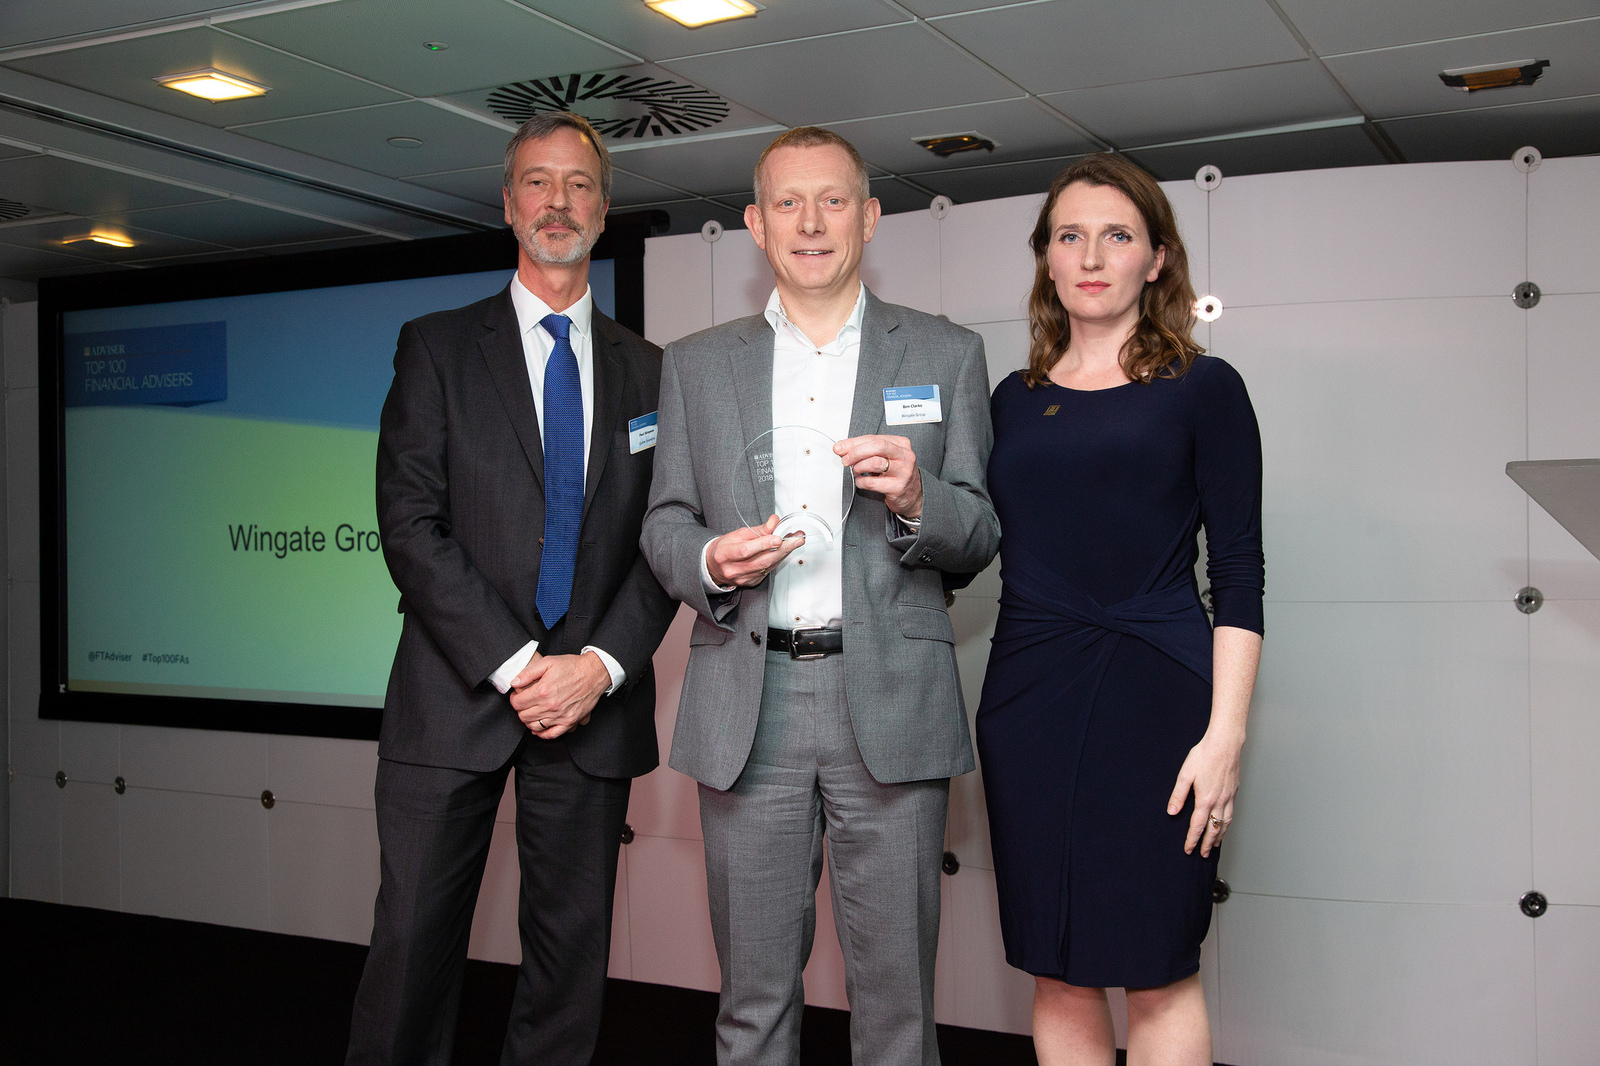 Ben Clarke (centre), managing director of Wingate Group, picking up their FT Adviser award